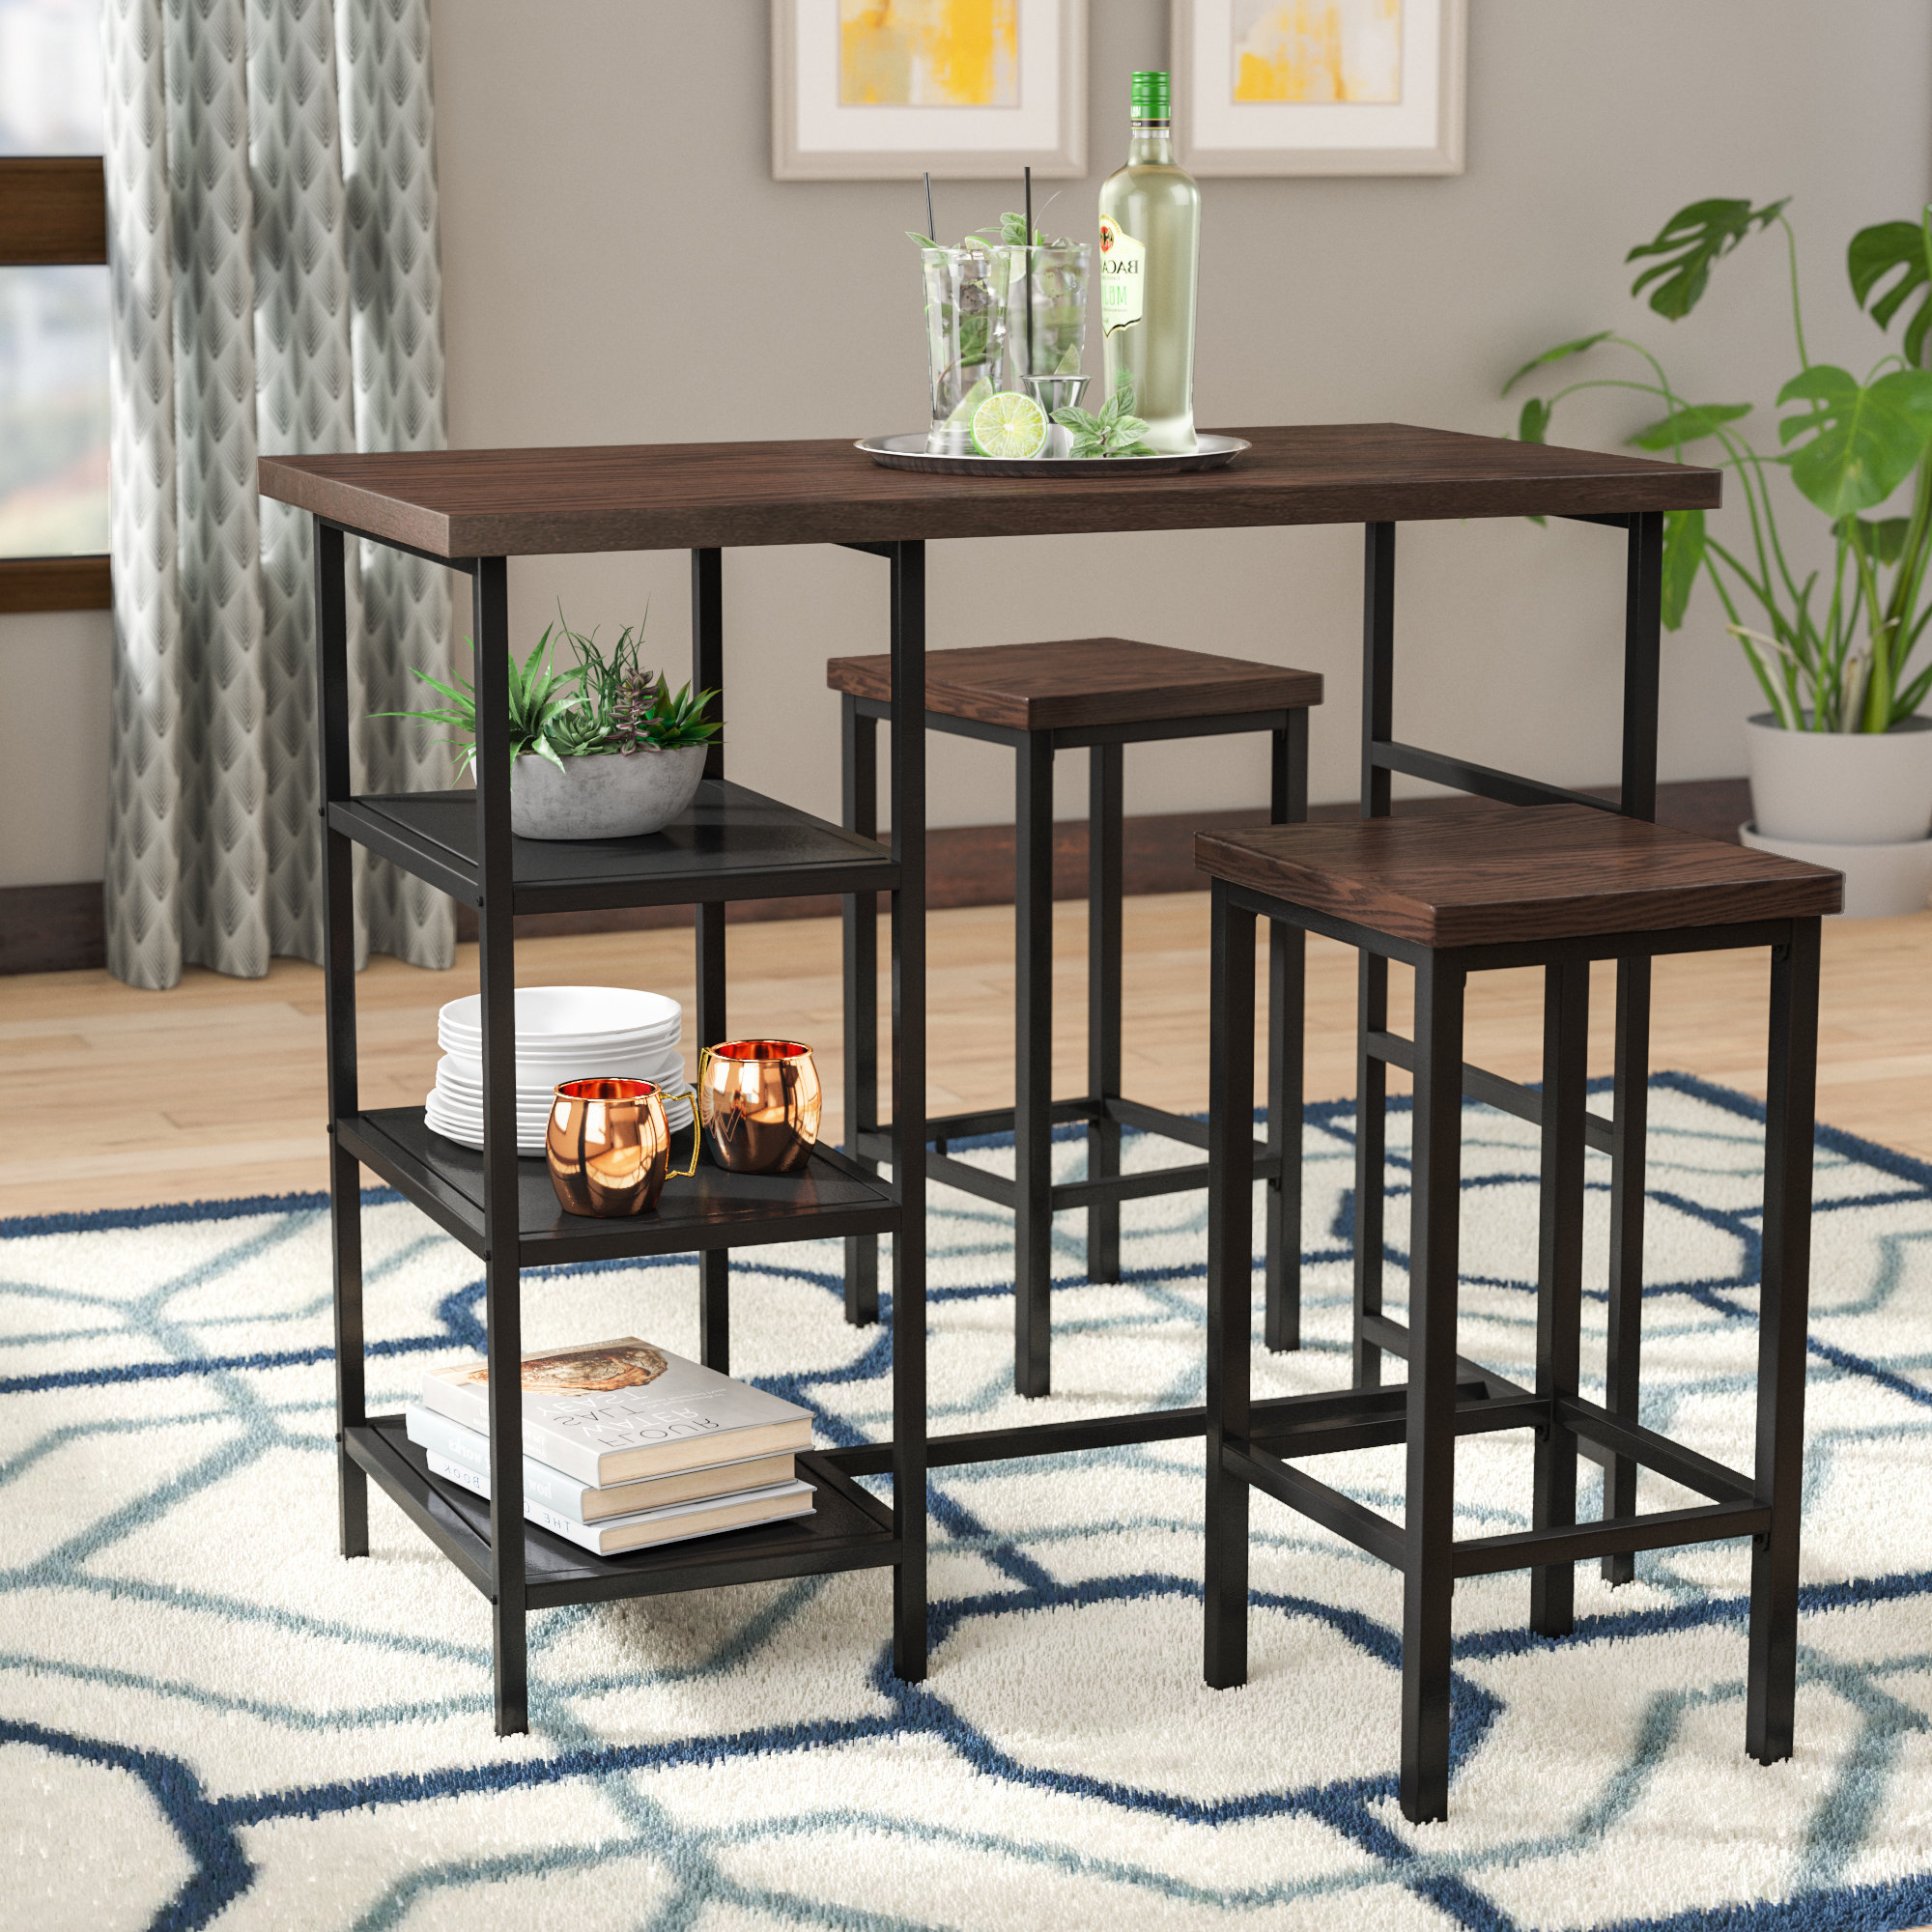 Trendy Du Bois 3 Piece Pub Table Set Regarding Kernville 3 Piece Counter Height Dining Sets (Gallery 6 of 20)